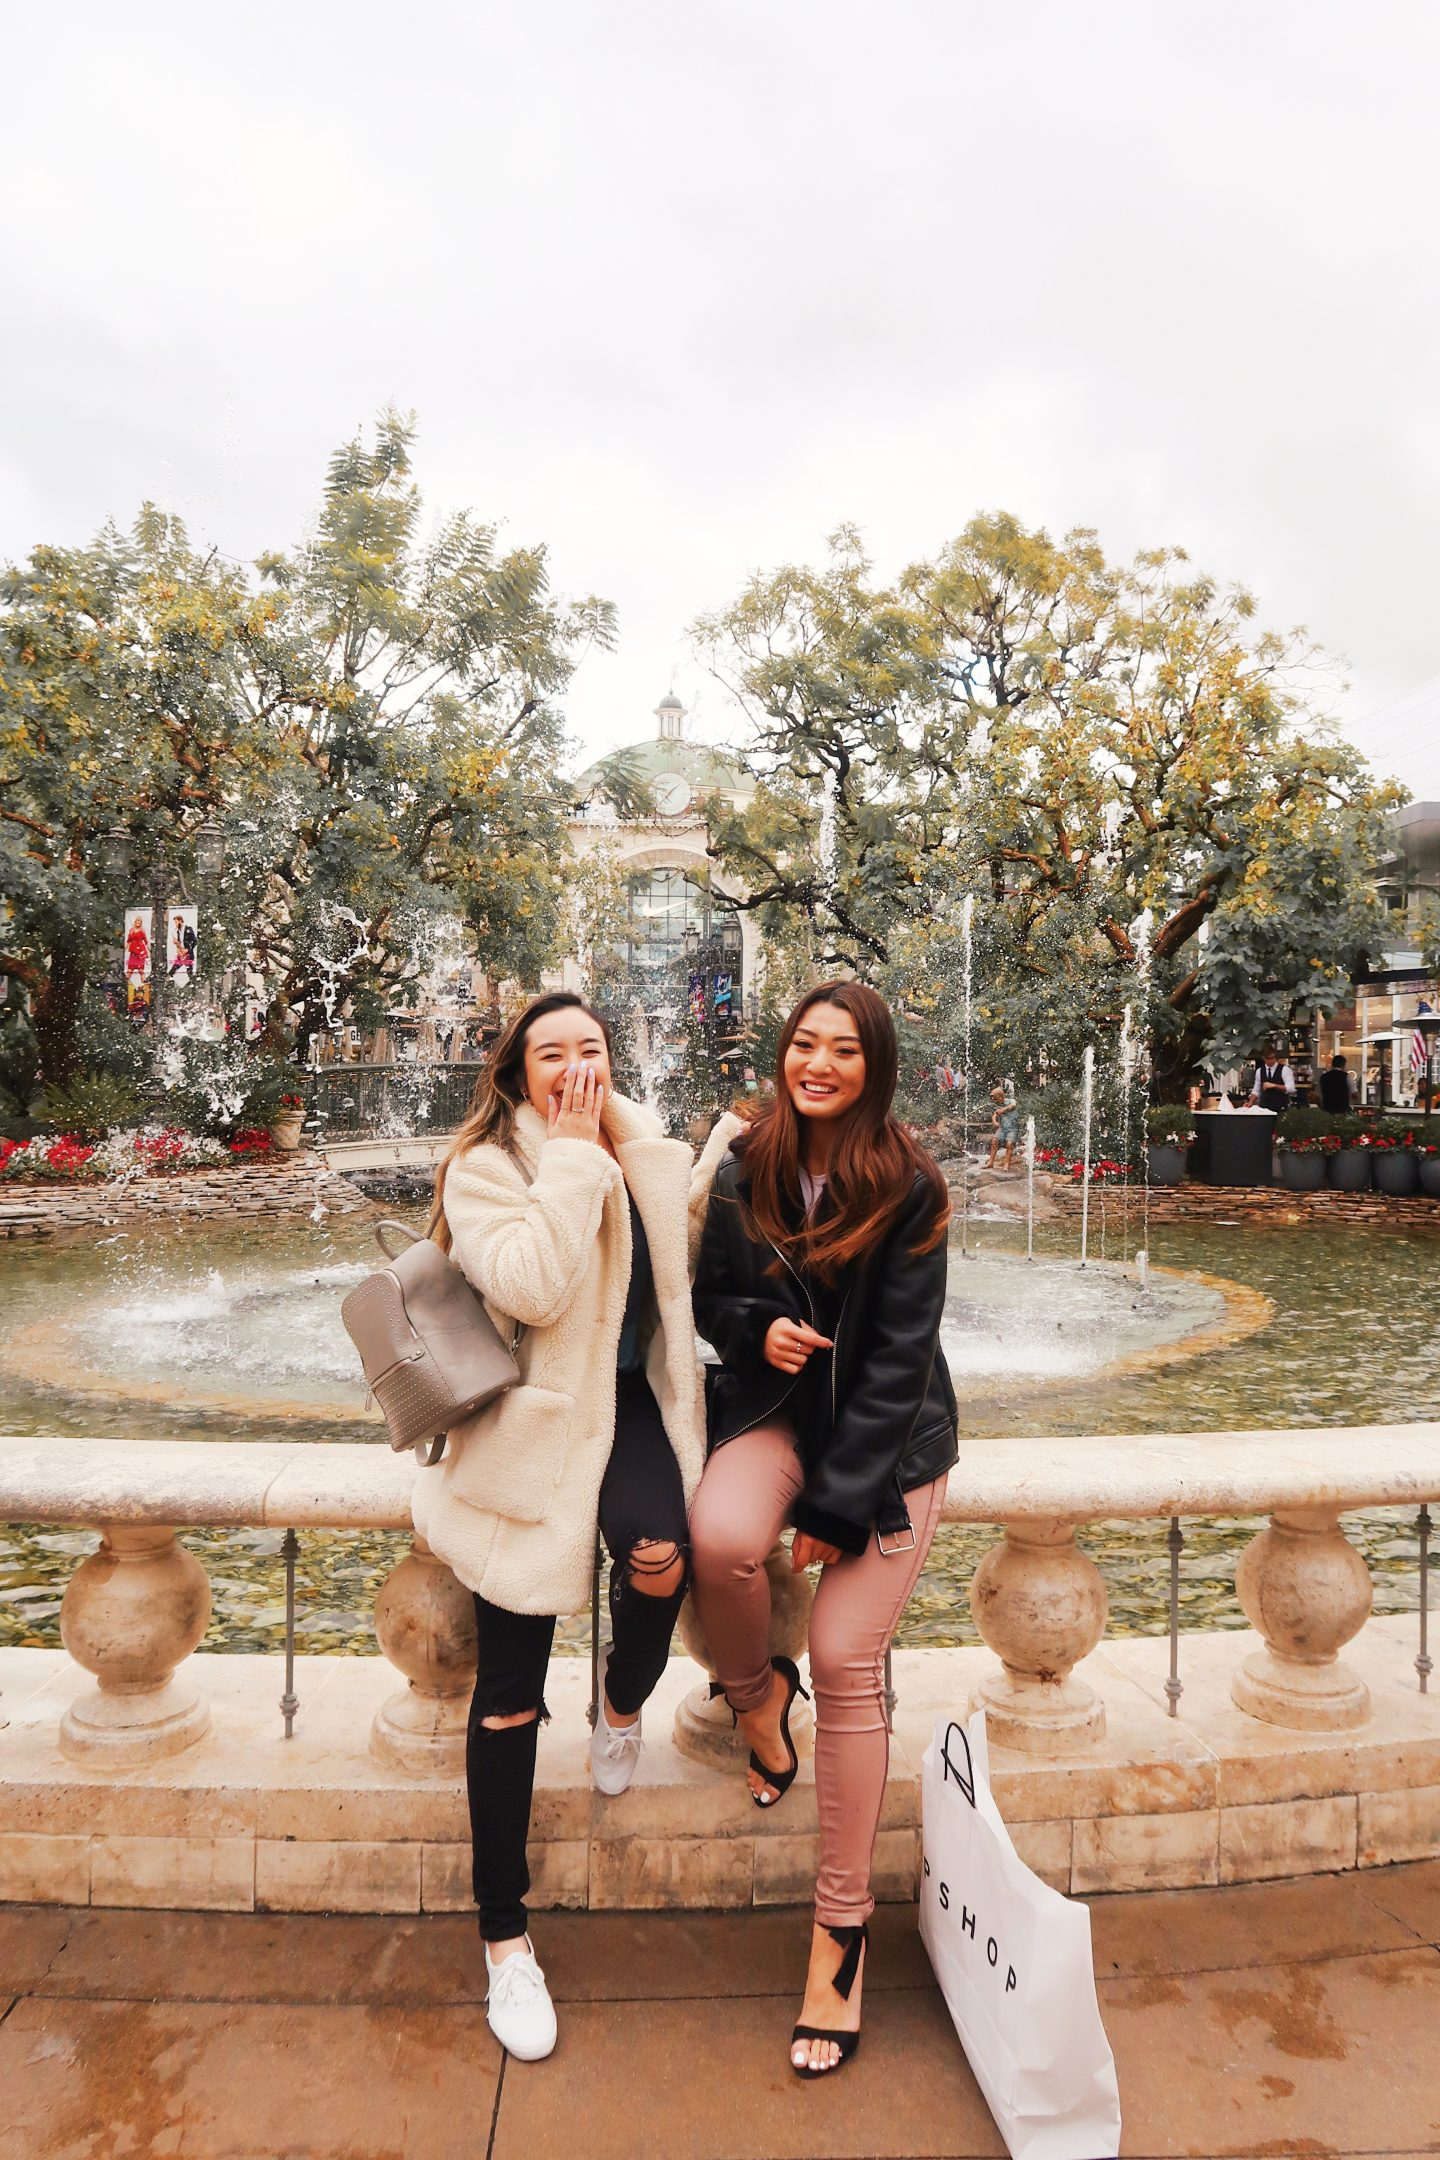 Shopping and exploring in The Grove in Los Angeles